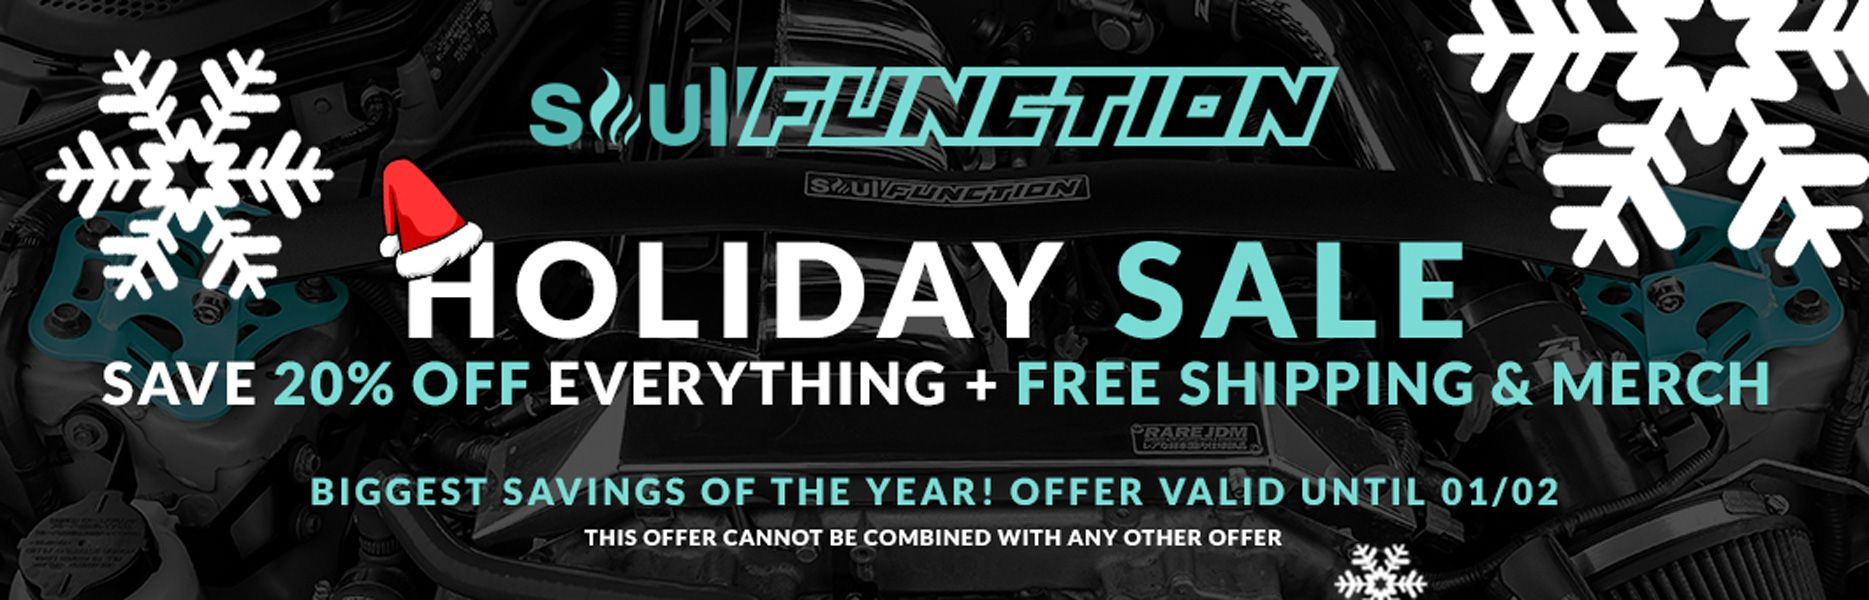 Soul Function Holiday Sale